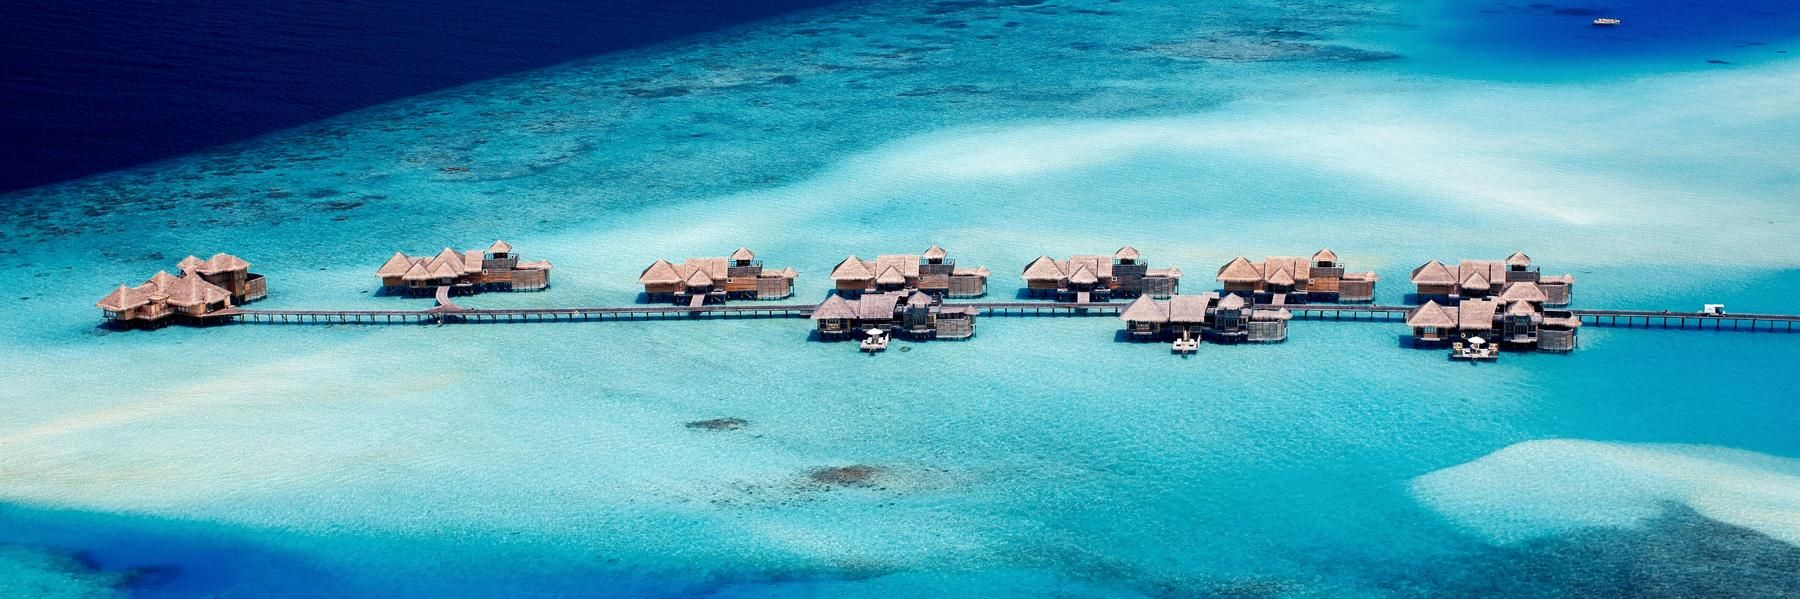 Boutique Maldives & Sri Lanka Holiday